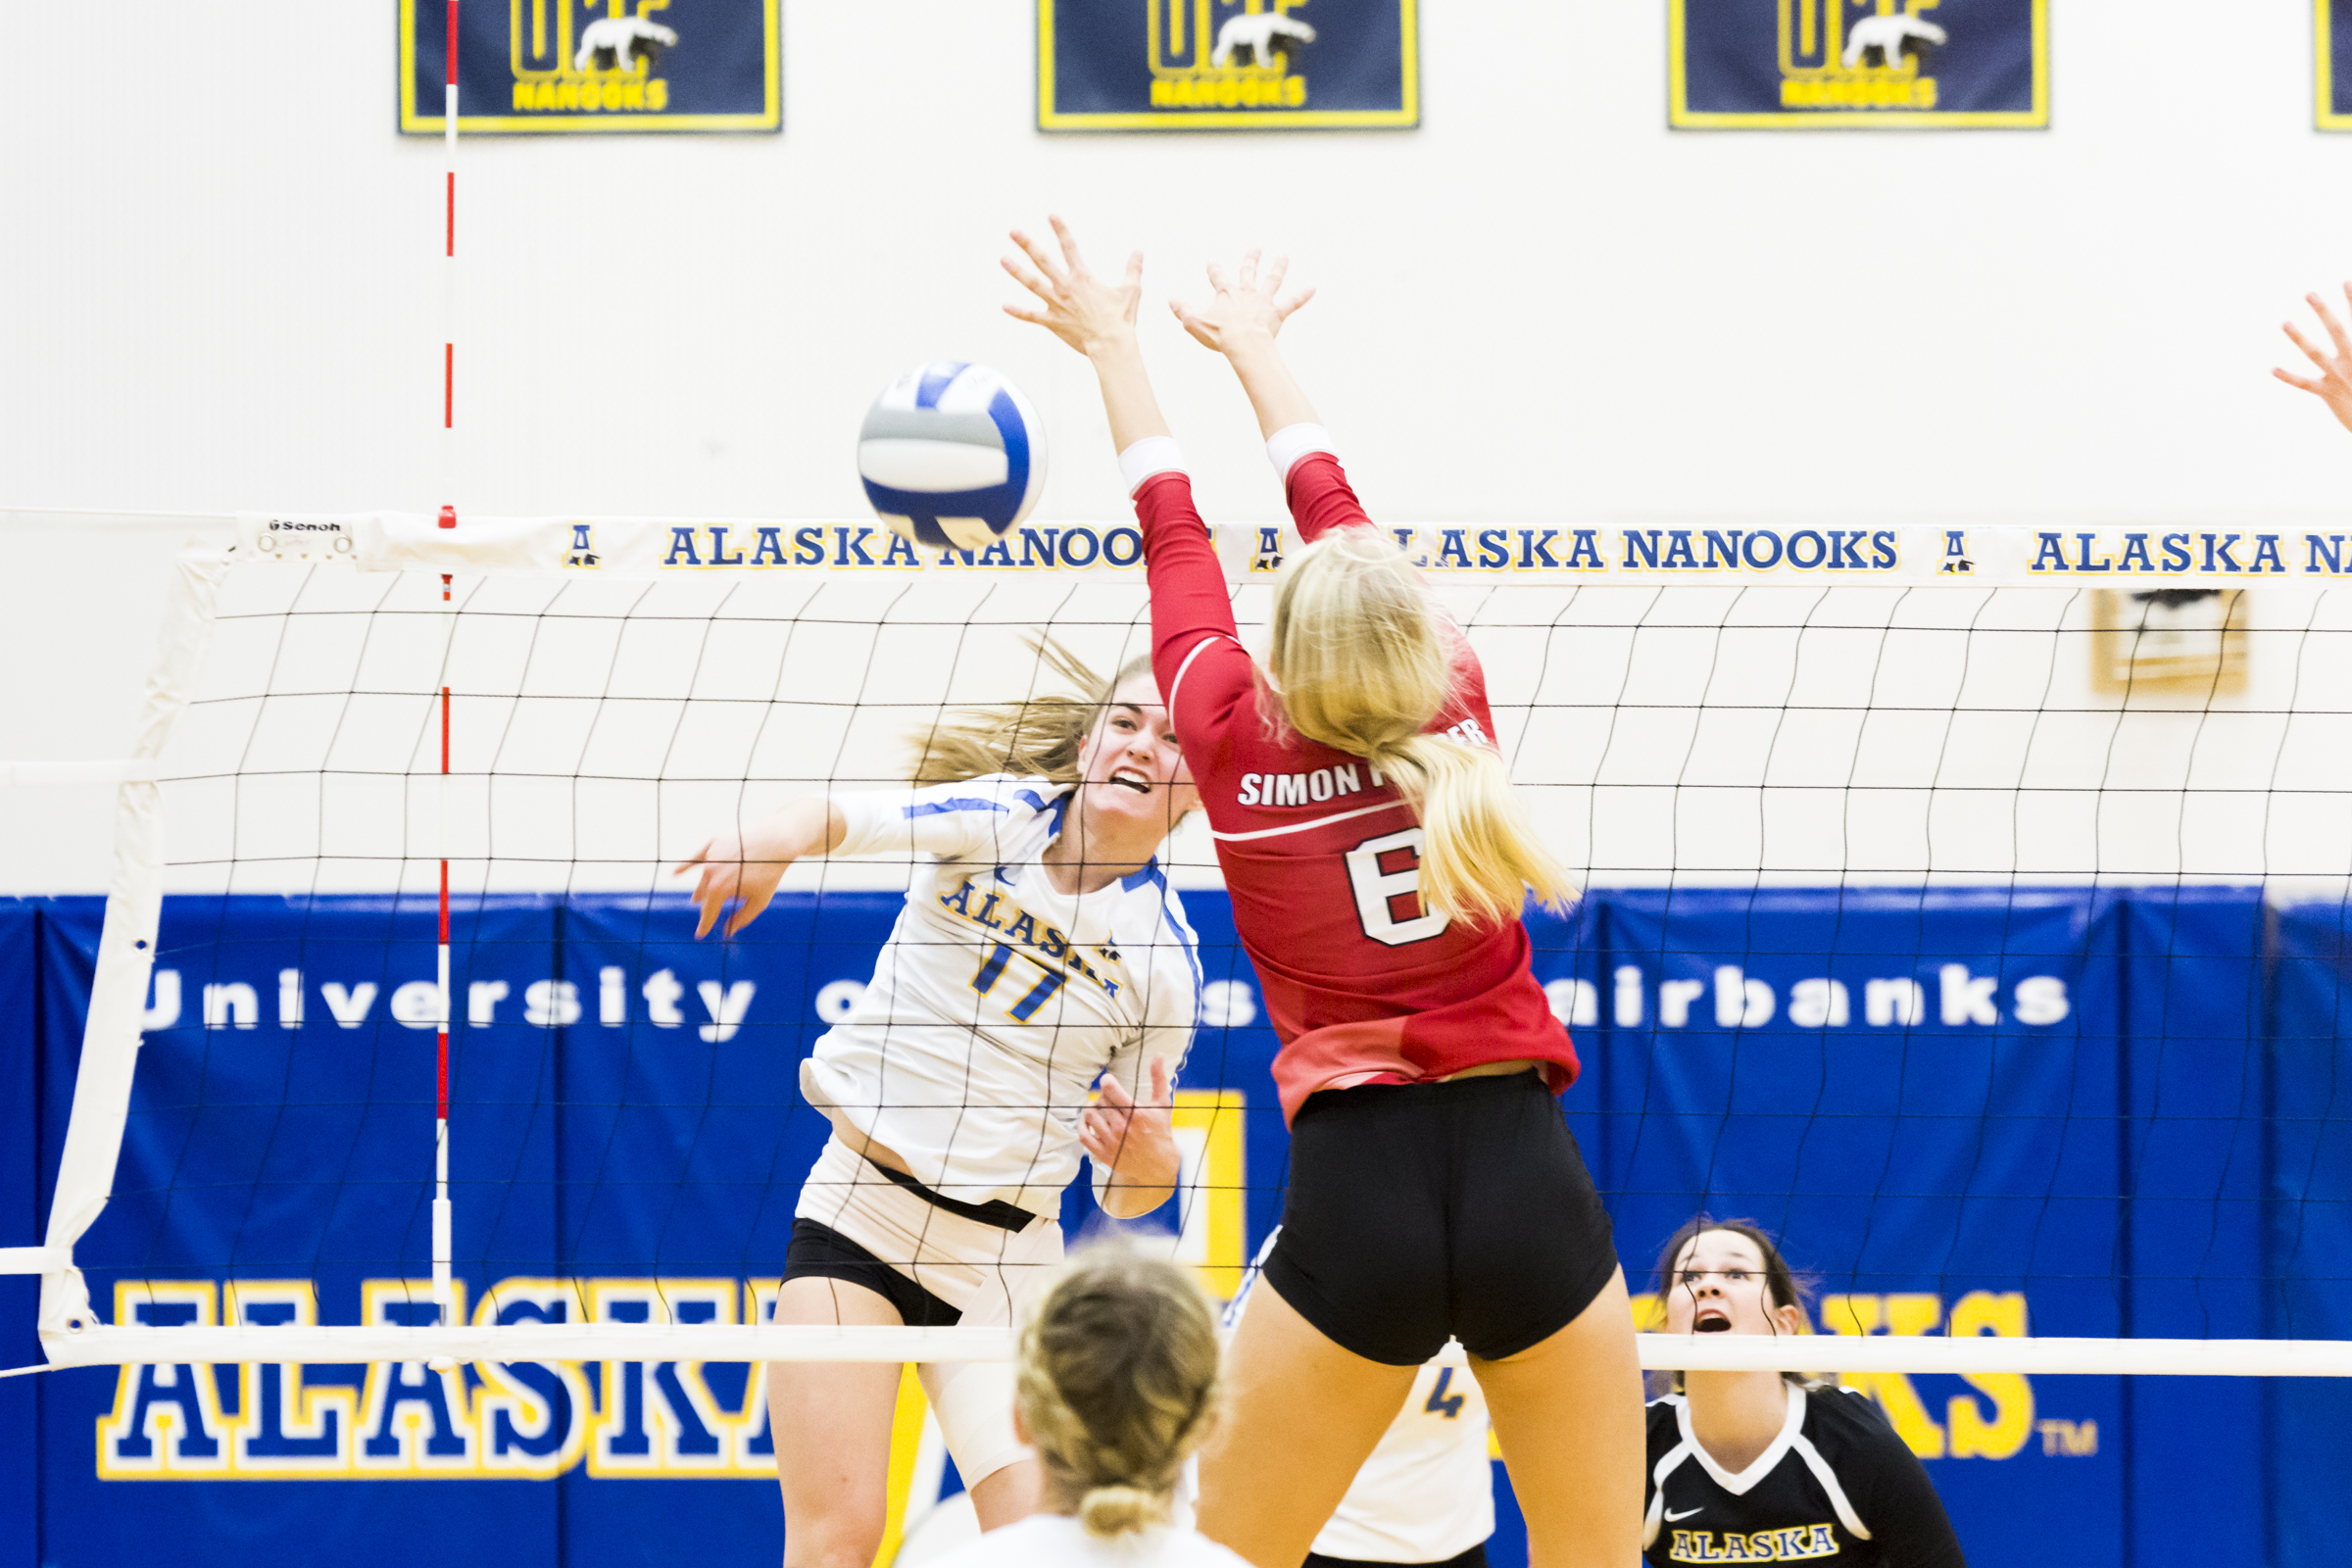 #17 Cate Whiting spikes the ball and scores a point on Thursday, October 18th 2018 UAF vs Simon Fraser University.